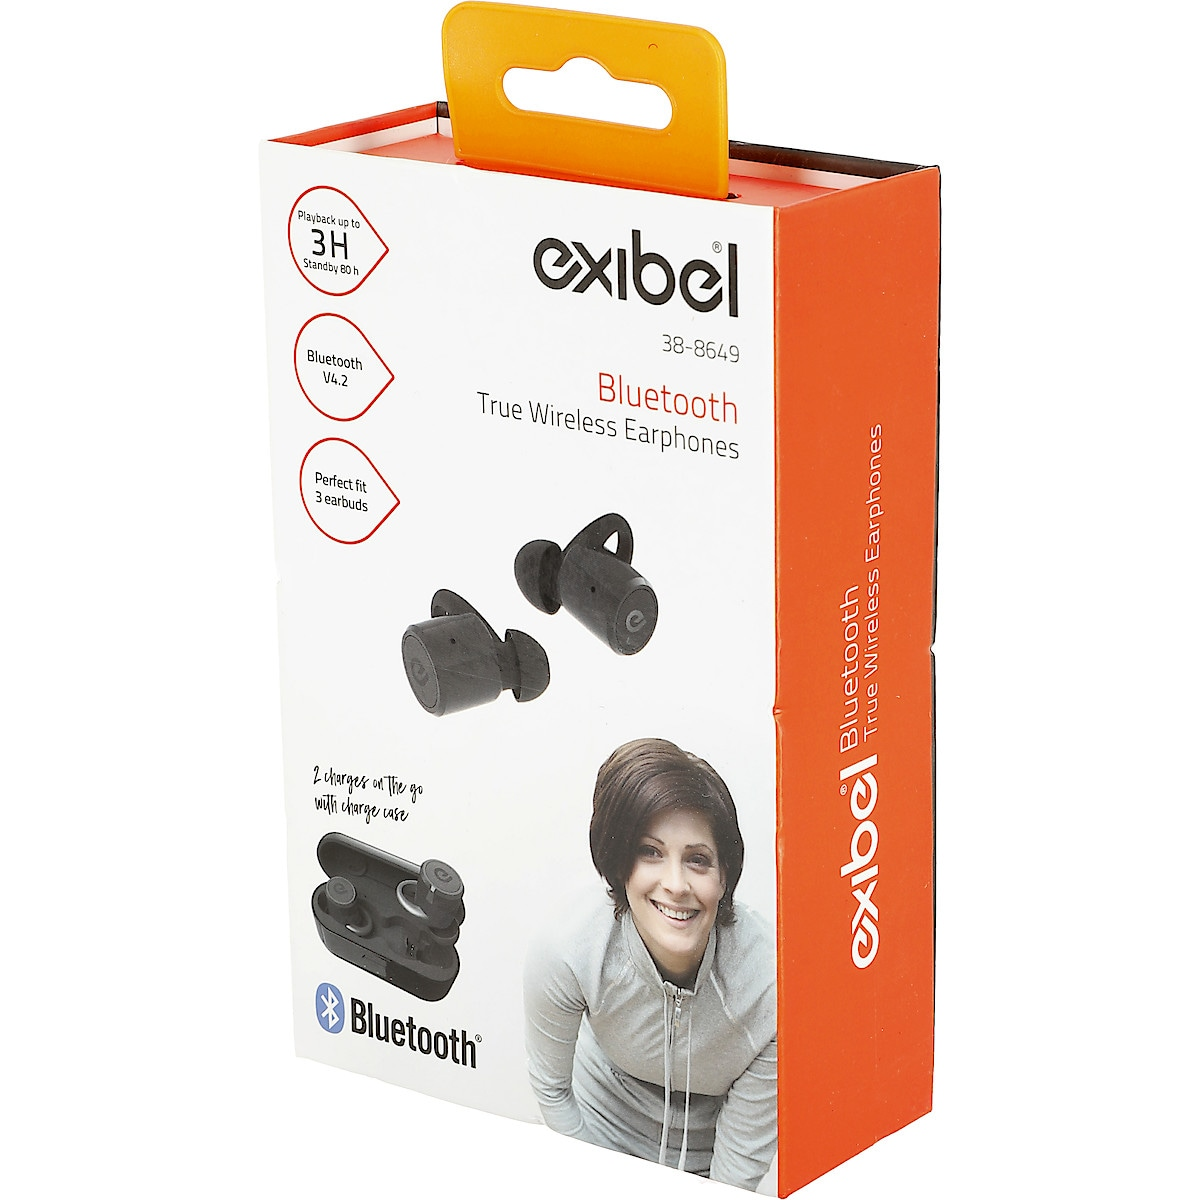 Exibel BIT100 True Wireless headset